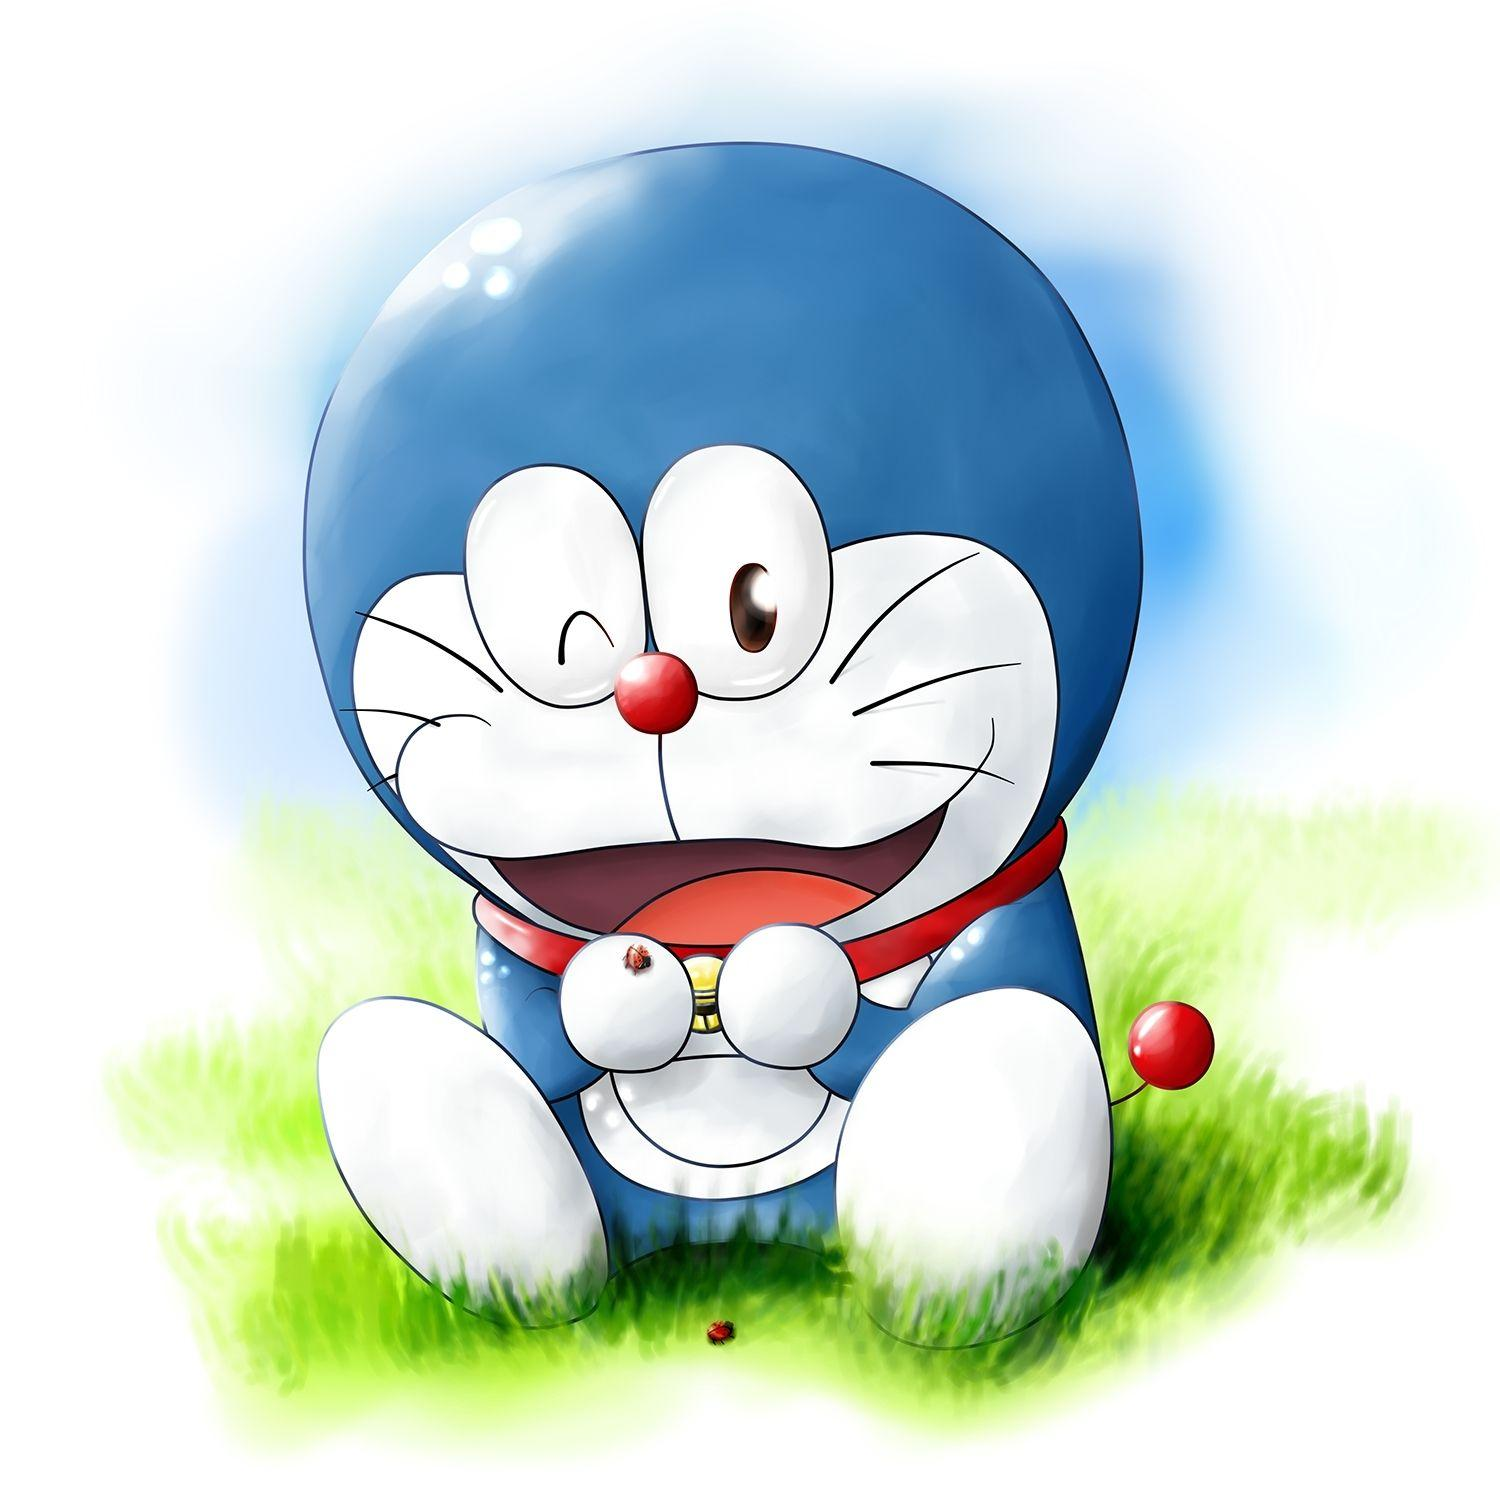 Download 600 Wallpaper Gambar Doraemon Full Screen HD Terbaik